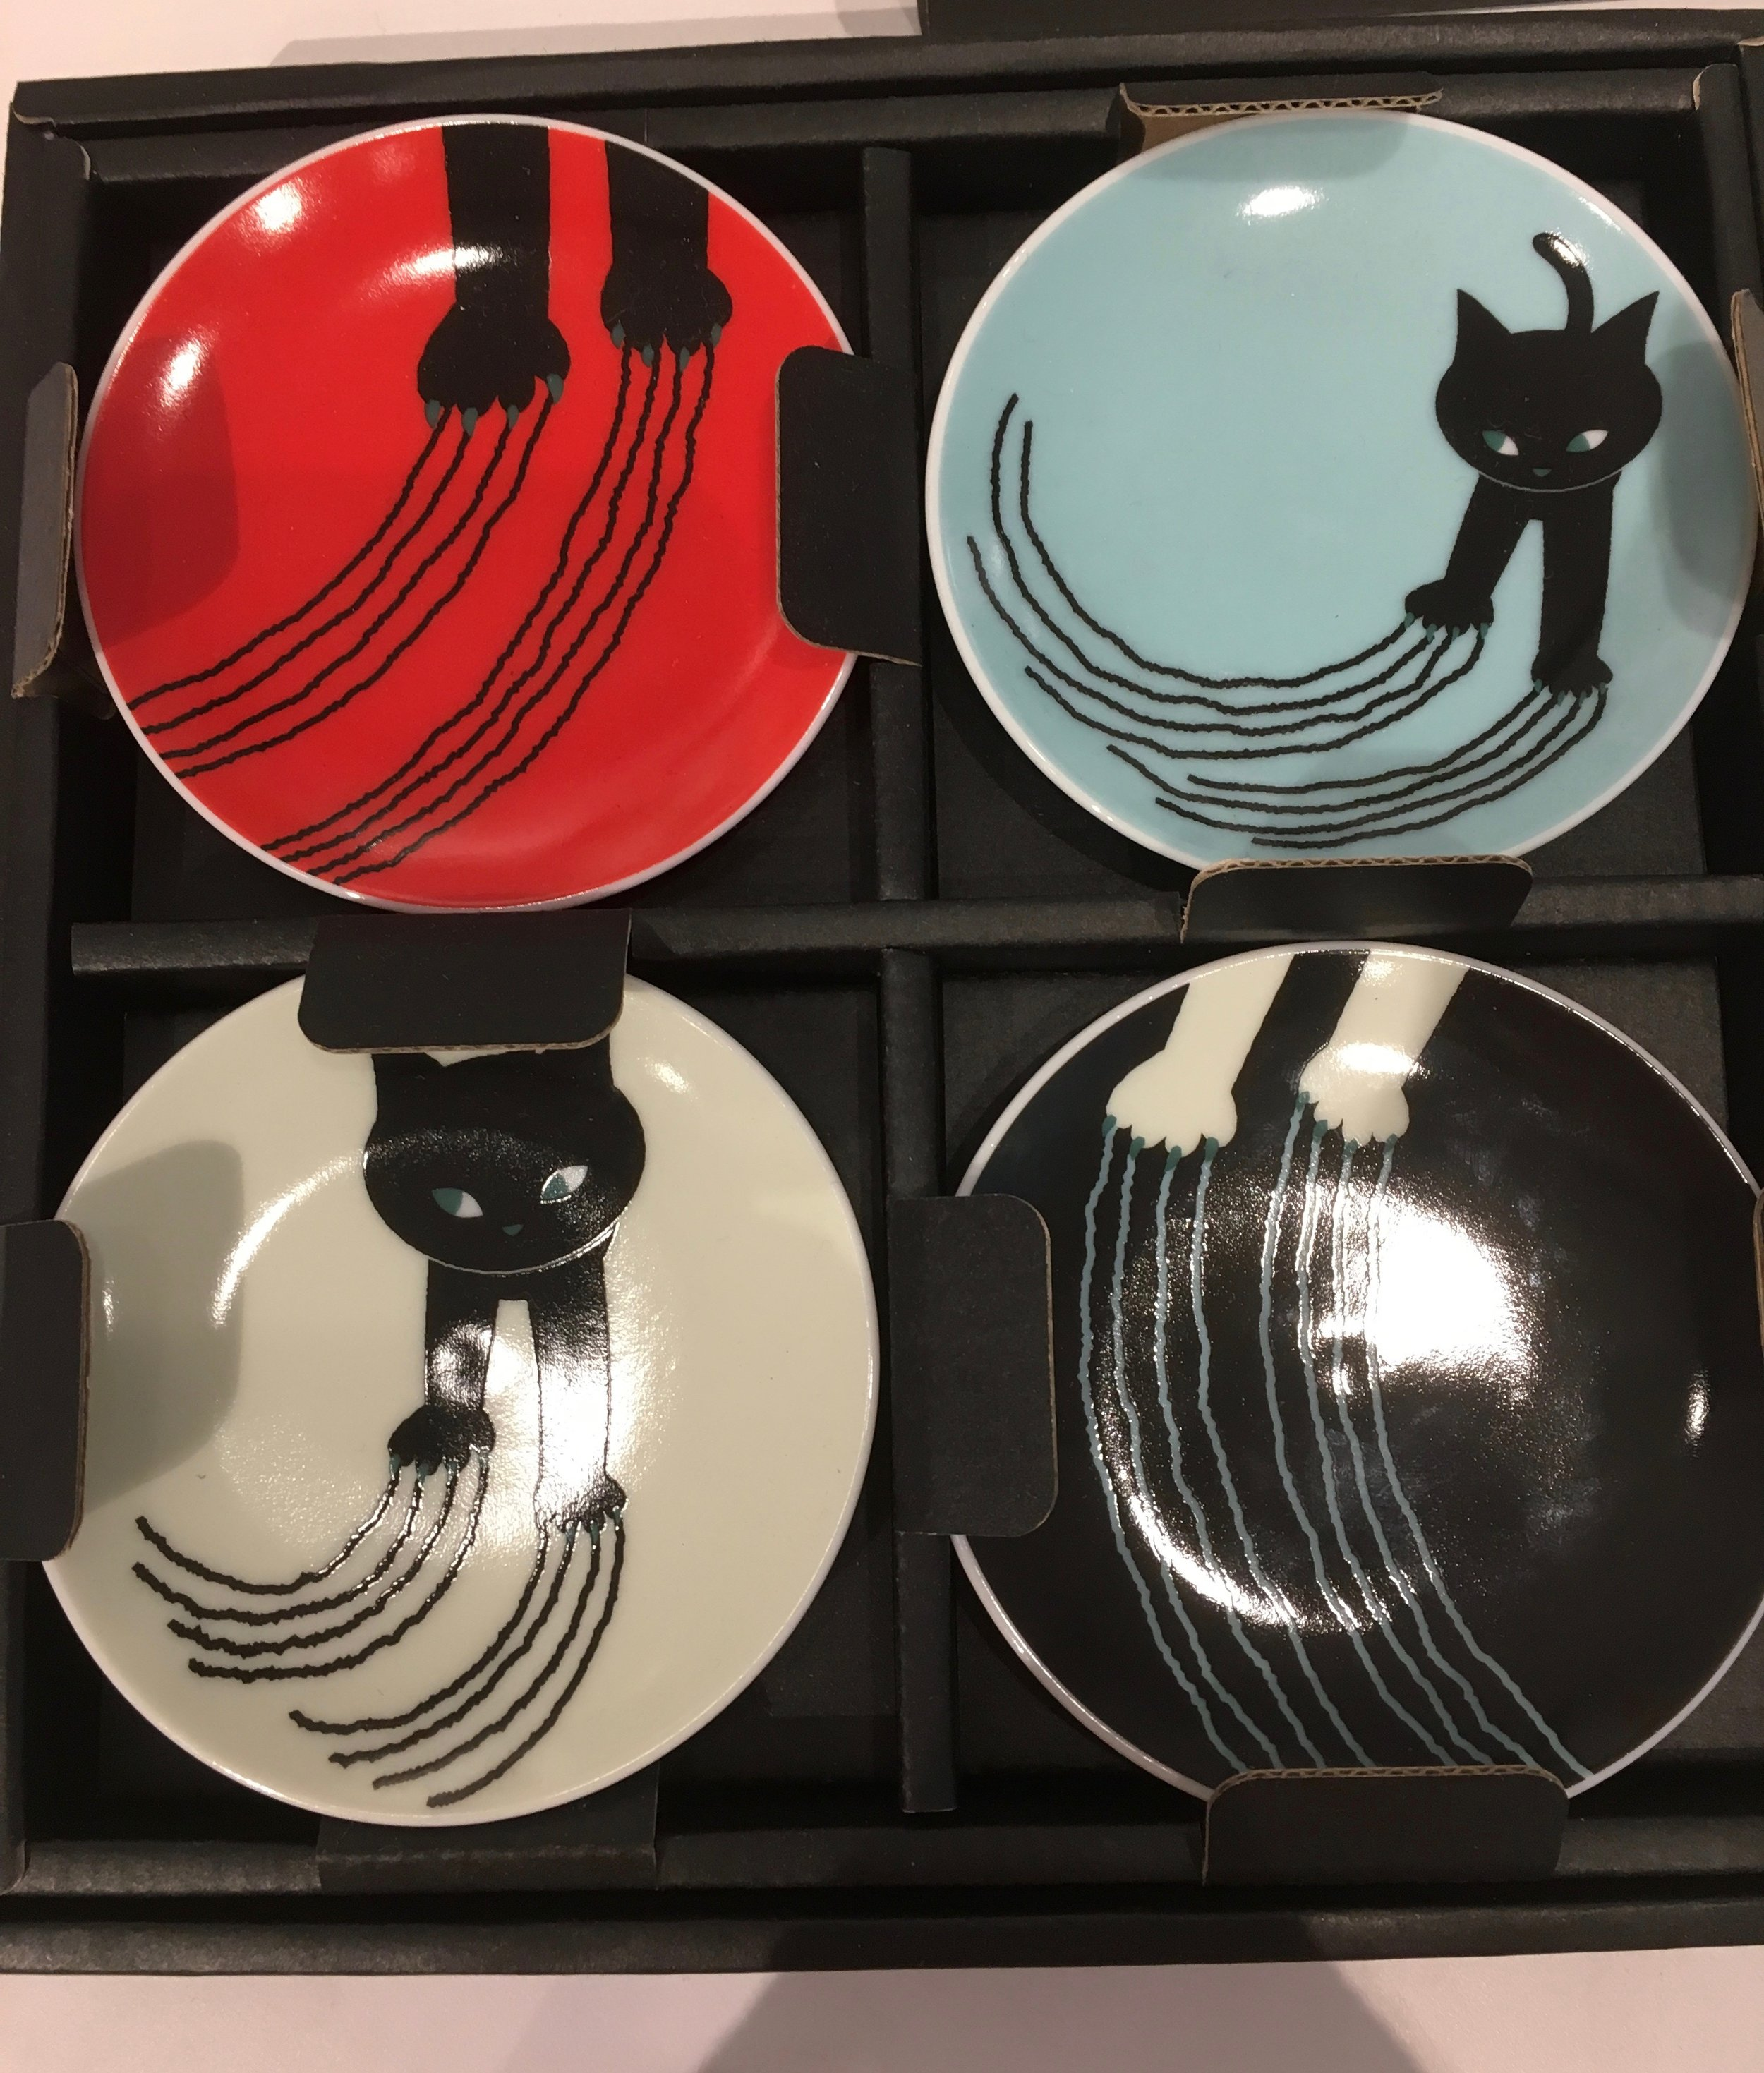 Sushi sauce dishes in the museum gift shop